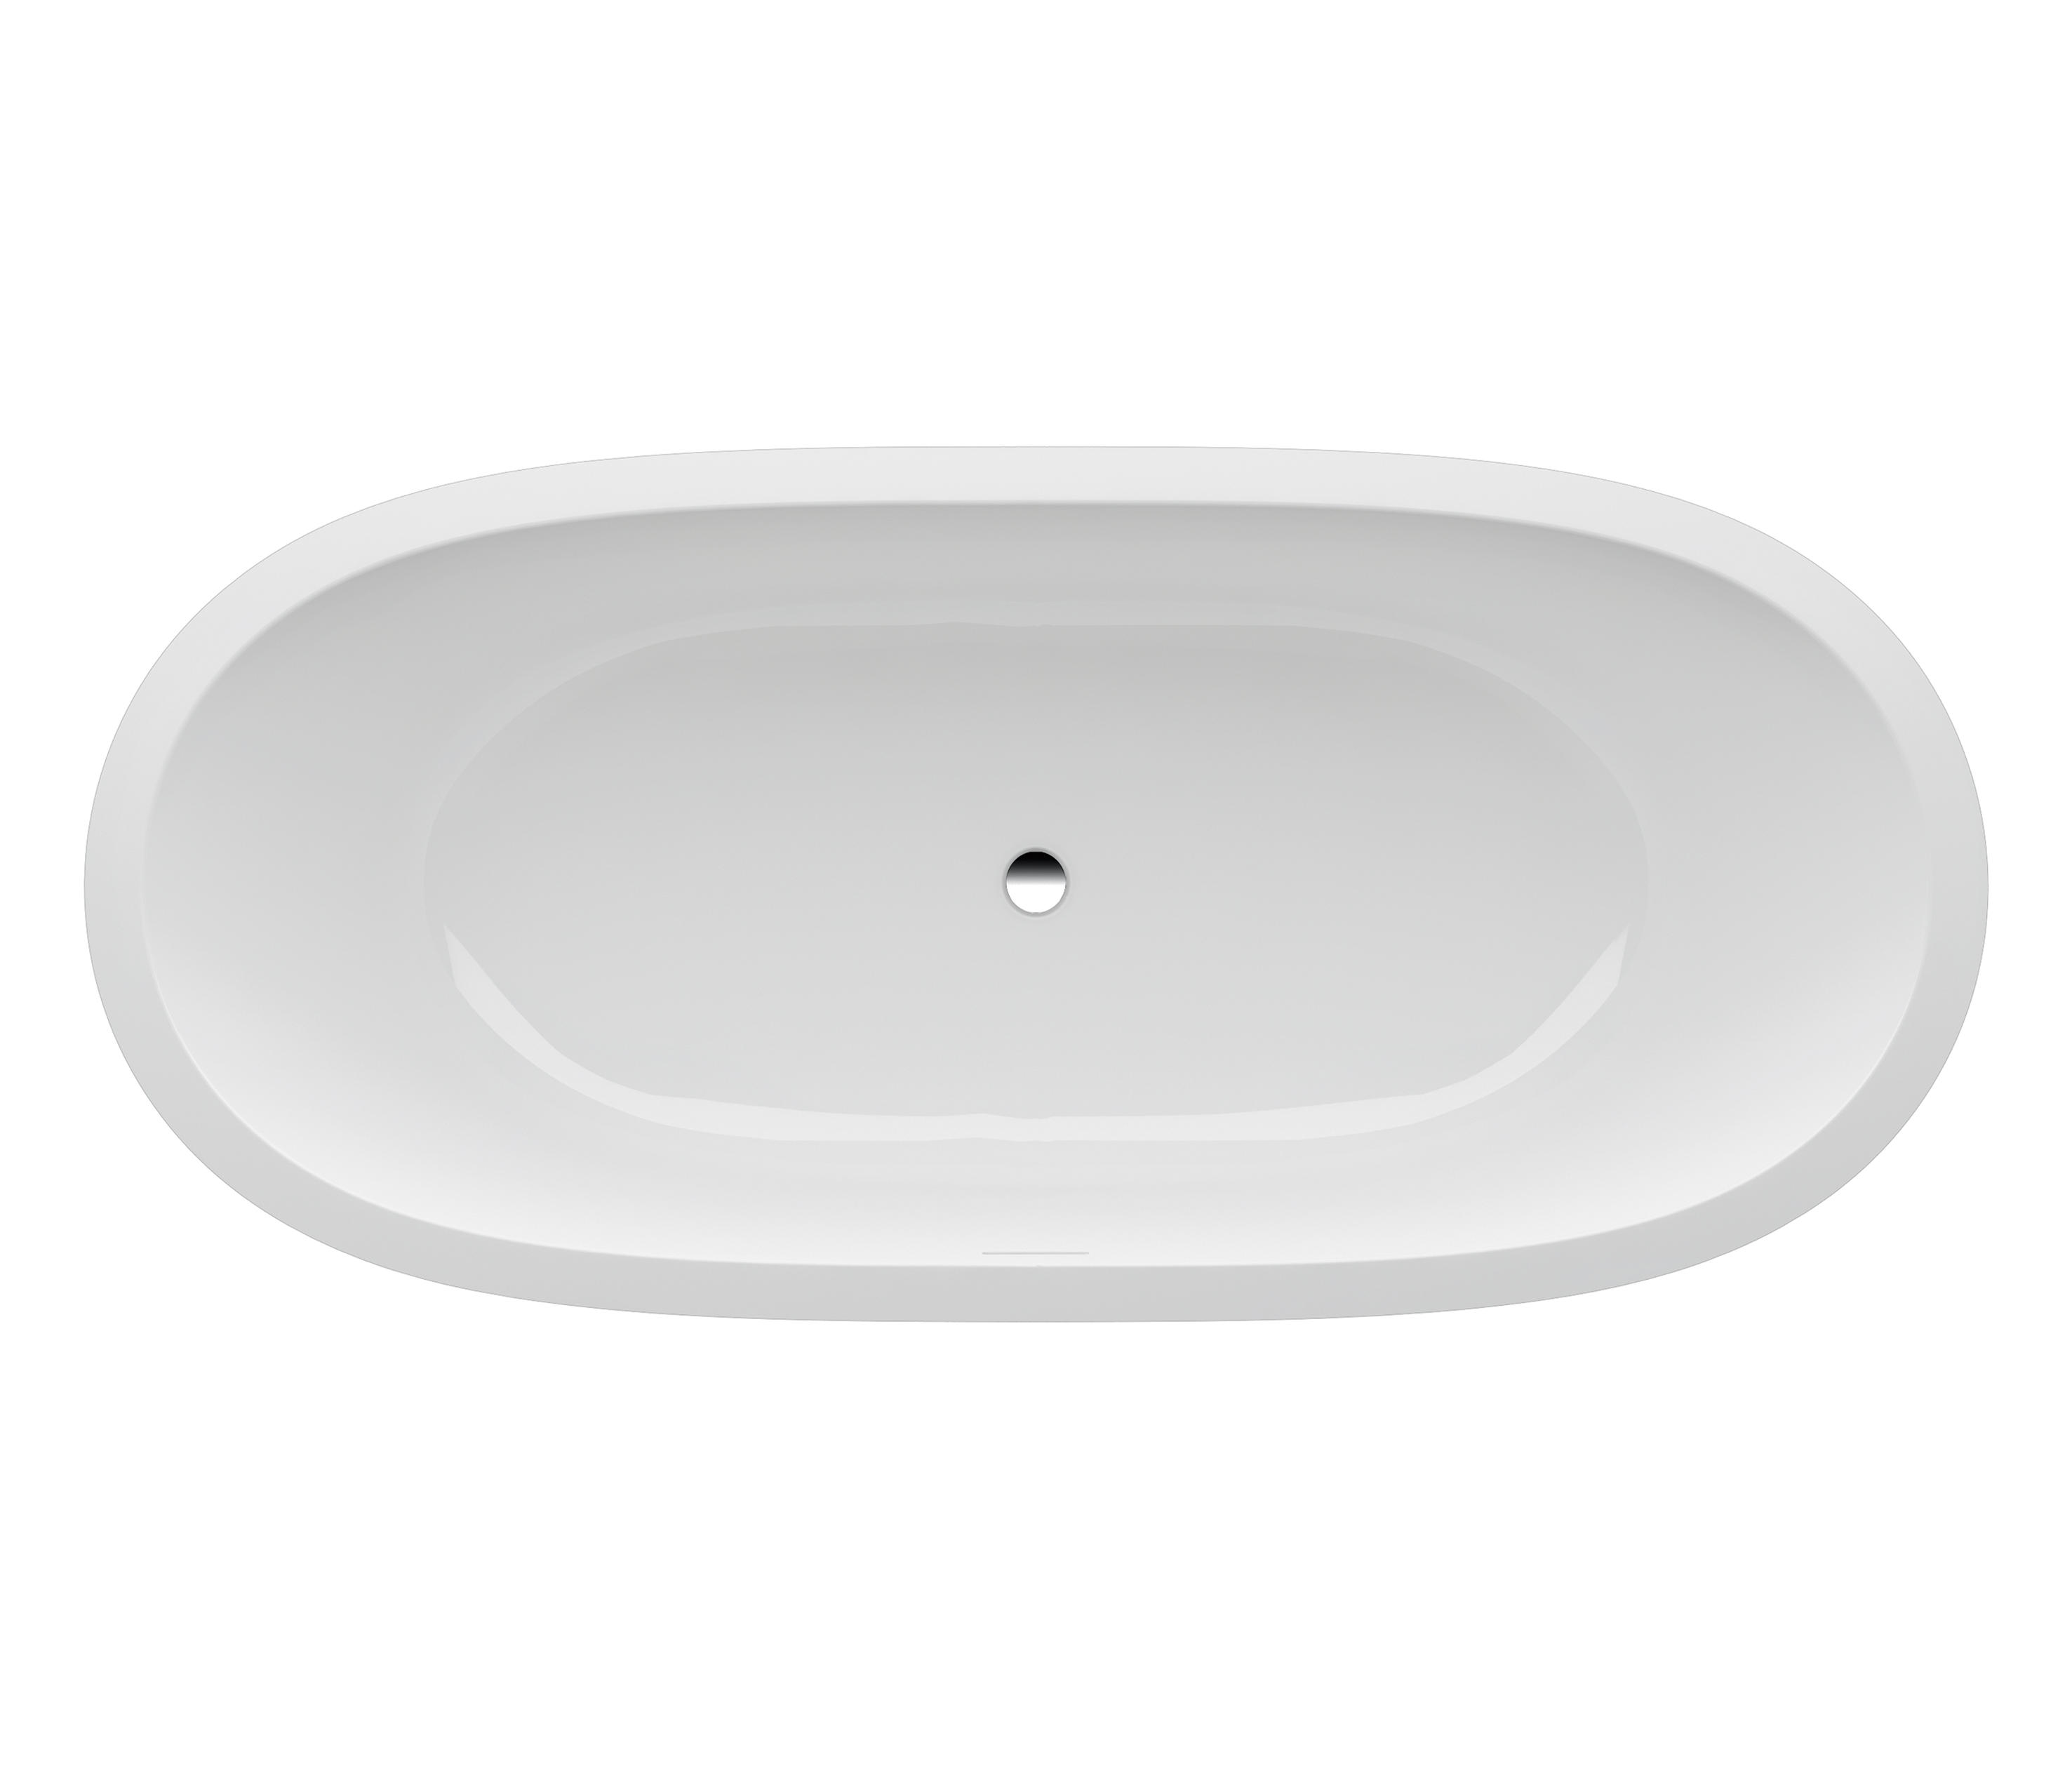 ILBAGNOALESSI ONE | BATHTUB BUILT-IN - Bathtubs from Laufen | Architonic